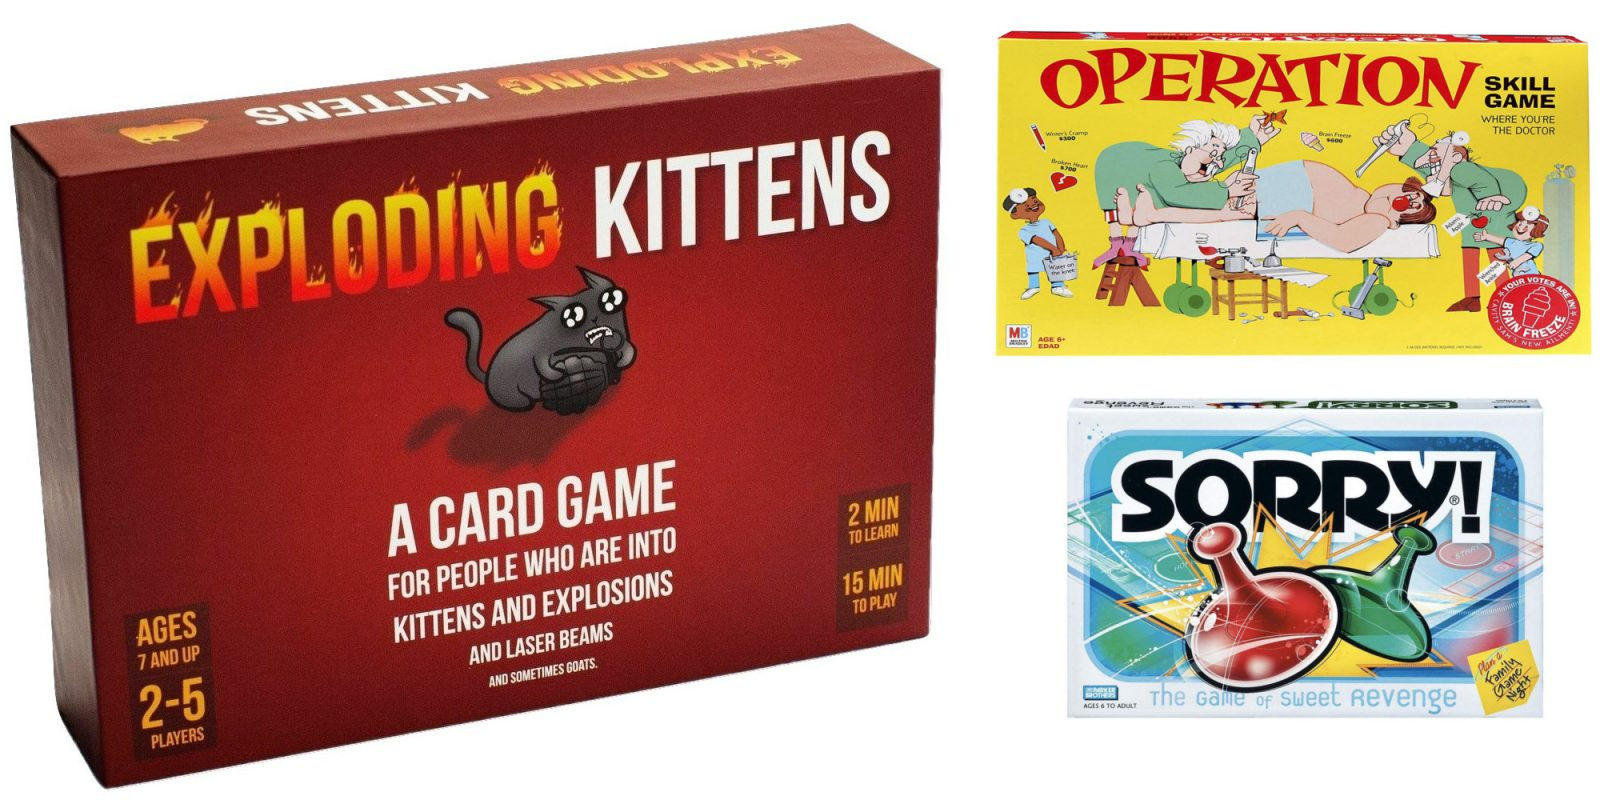 Prime Day Board/Card game deals from $8.50: Exploding Kittens, Monopoly, more